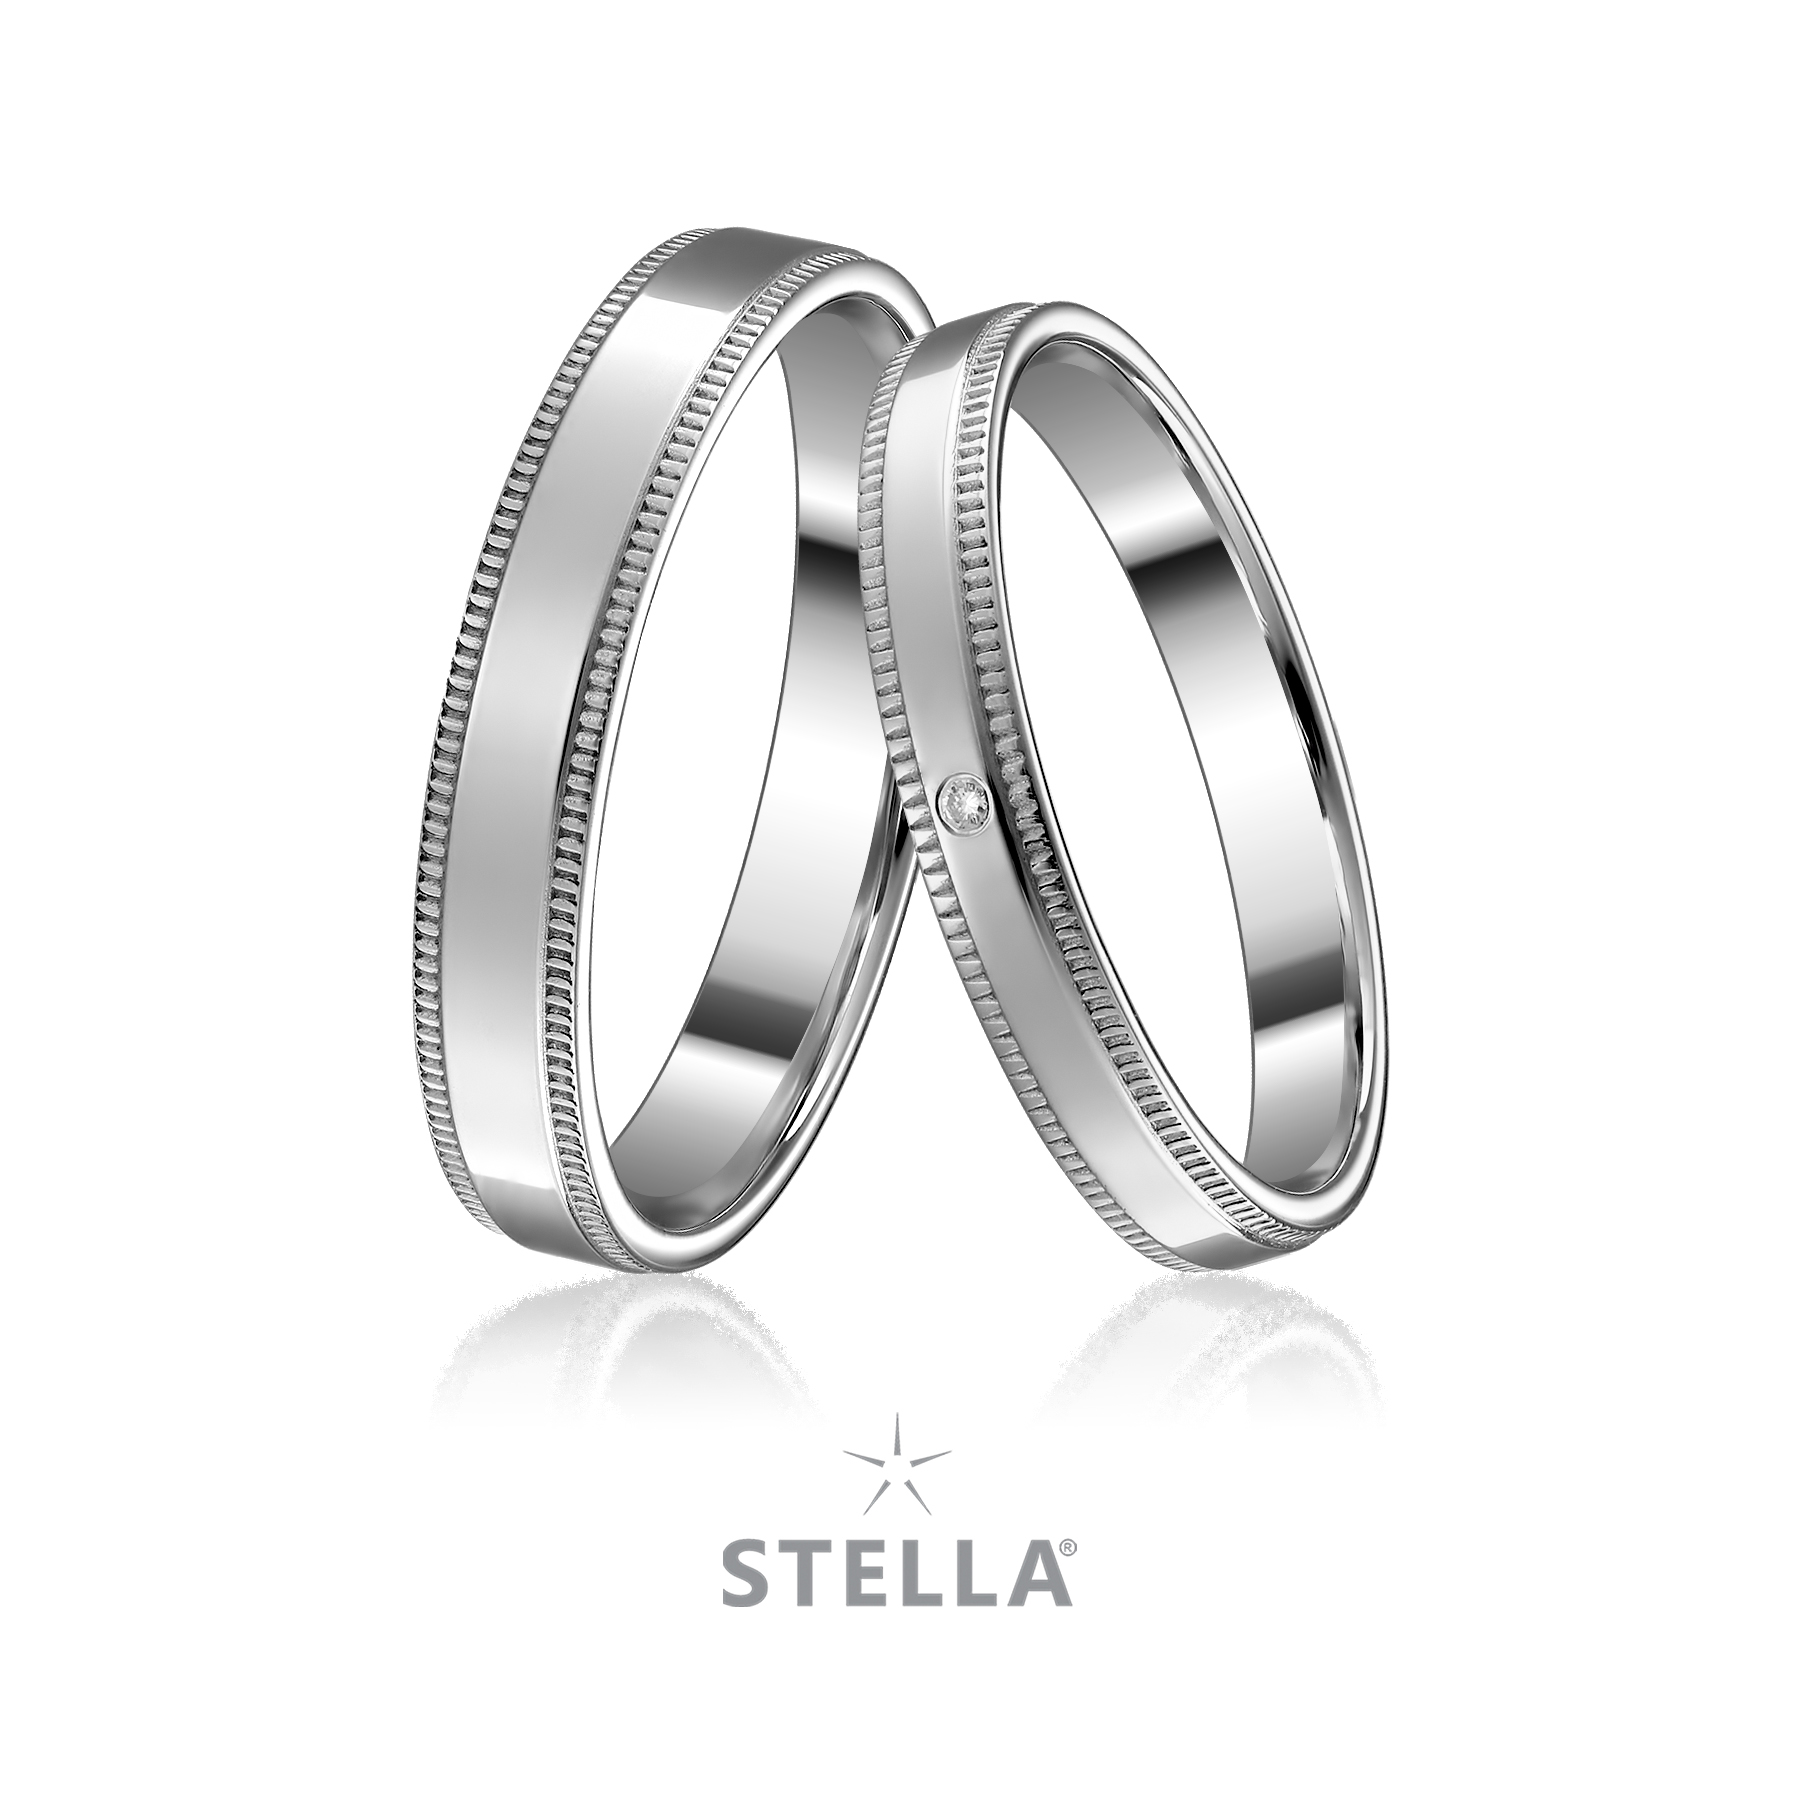 Verighete STELLA for Diamond Boutique aur14k